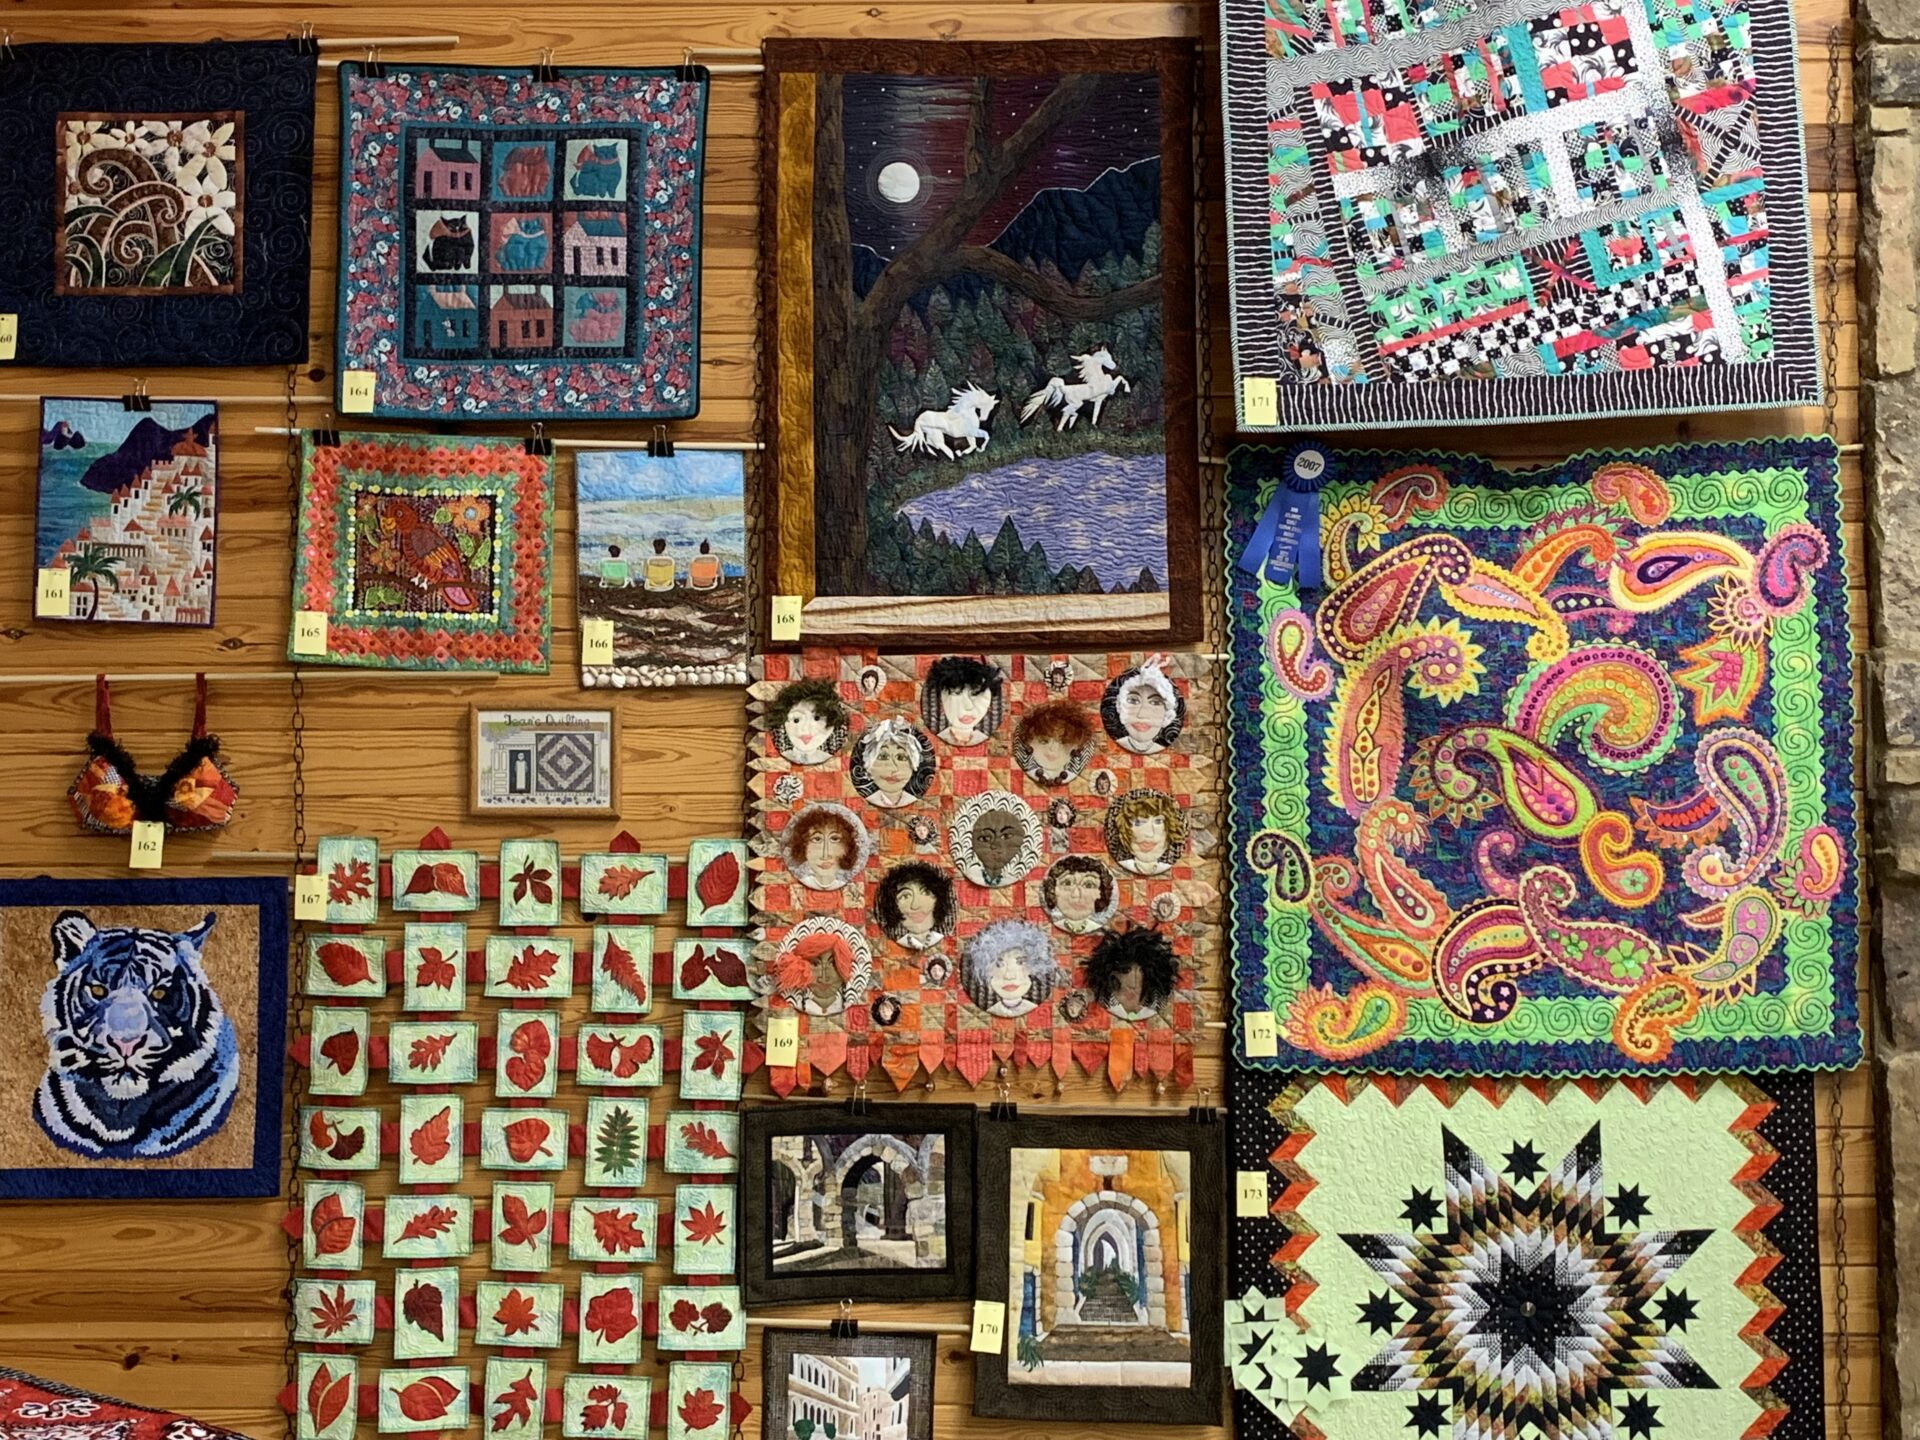 The 2021 Davies Quilt Show is coming up! This year's event will take place November 5th, 6th, and 7th from 10 am to 4 pm. $10 admission. Vendors, House Tours, Music, Demonstrations, Games for Kids, Food, and Door Prizes. Quilt show drop offs on November 2nd - 3rd from 10:30-4:30 at 3570 Davieshire Dr Bartlett 38133 with entry form. Potential vendors can apply for a booth here.   If you are interested in donating to the preservation and restoration of the Davies Manor Quilt Collection, please consider donating. Included in the Davies Quilt Show this year is   the Inspired by Elvis art quilt exhibit organized by Donna Marcinkowski Desoto. The exhbit features 94 small quilts quilted on the theme of Elvis, some done by local quilters! Stop by and enjoy this exhibit while it's in Memphis!